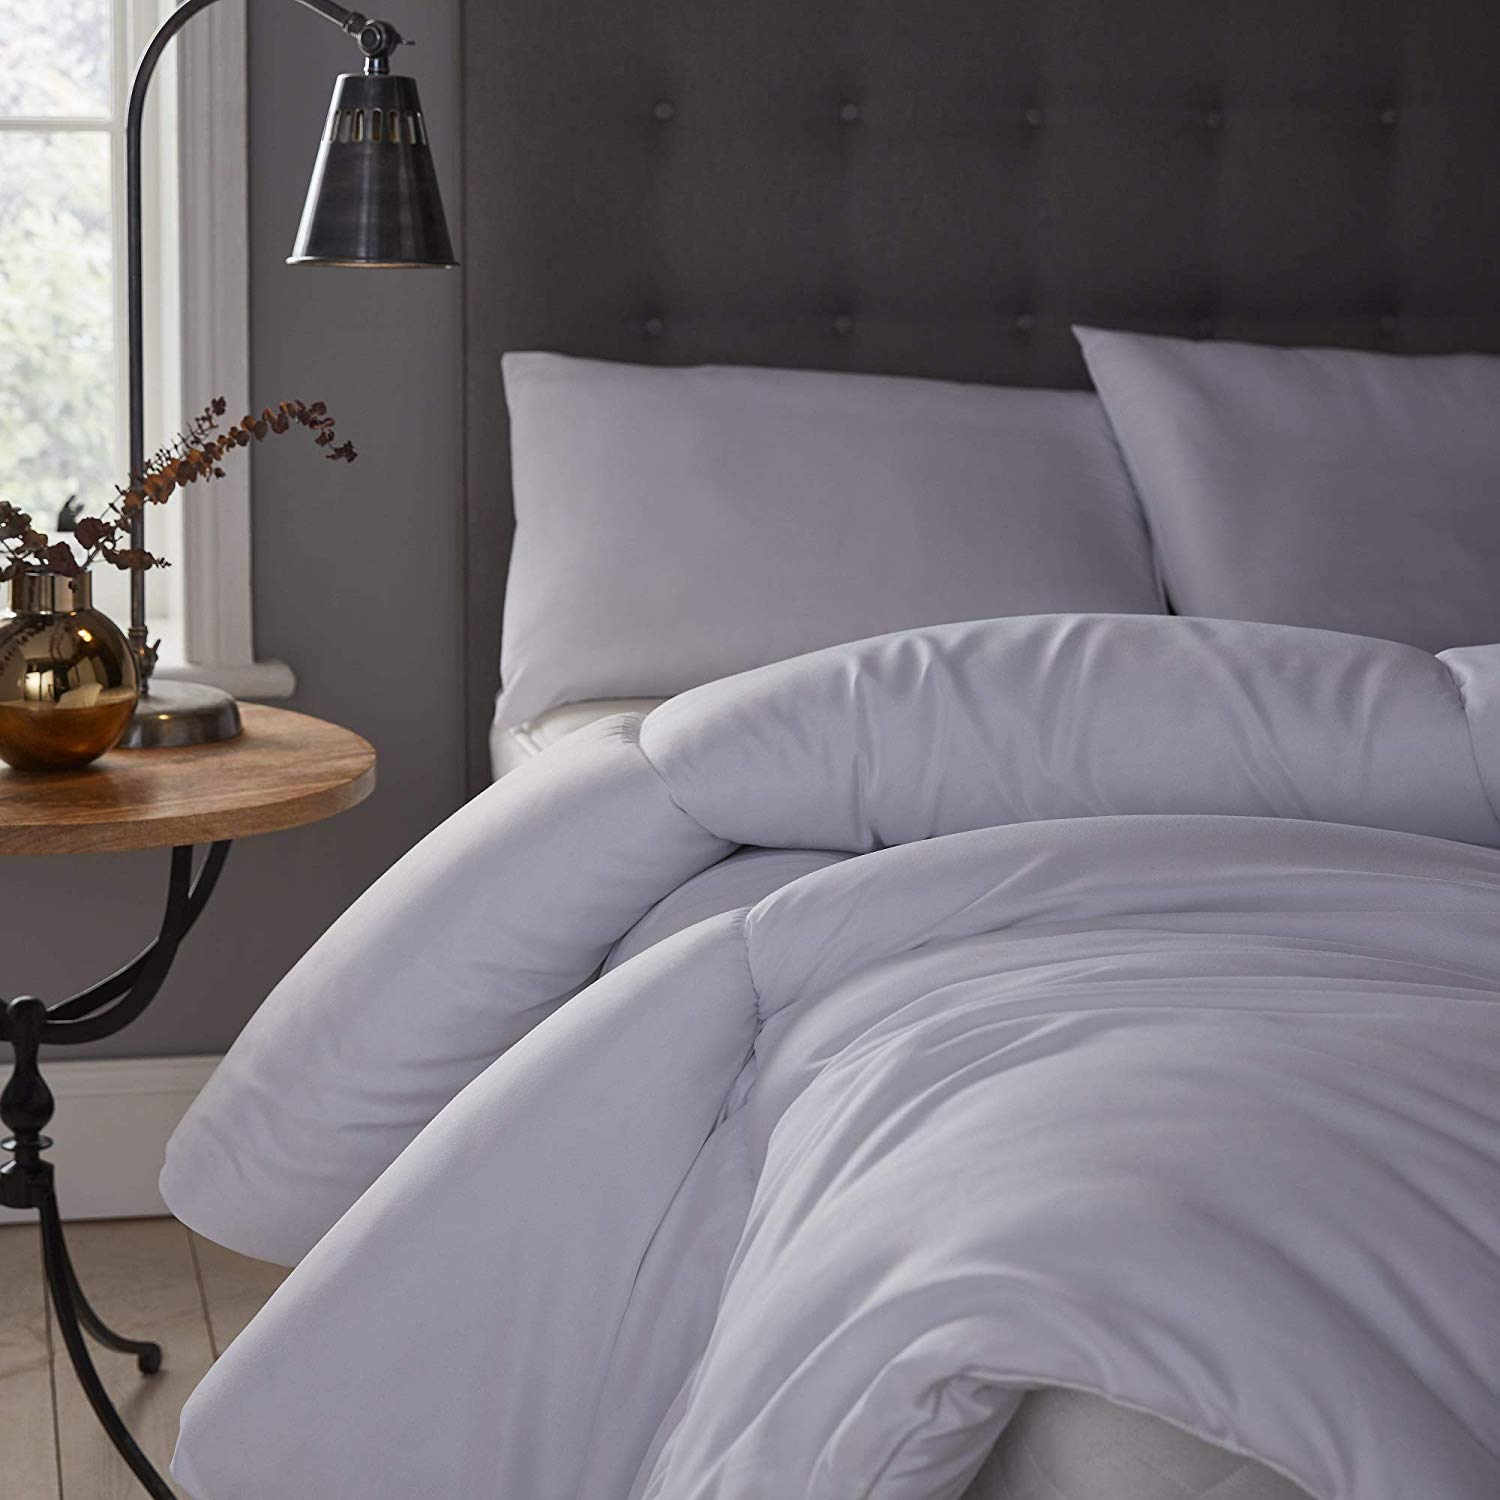 Silentnight Warm and Cosy 13.5 Tog, White, Double